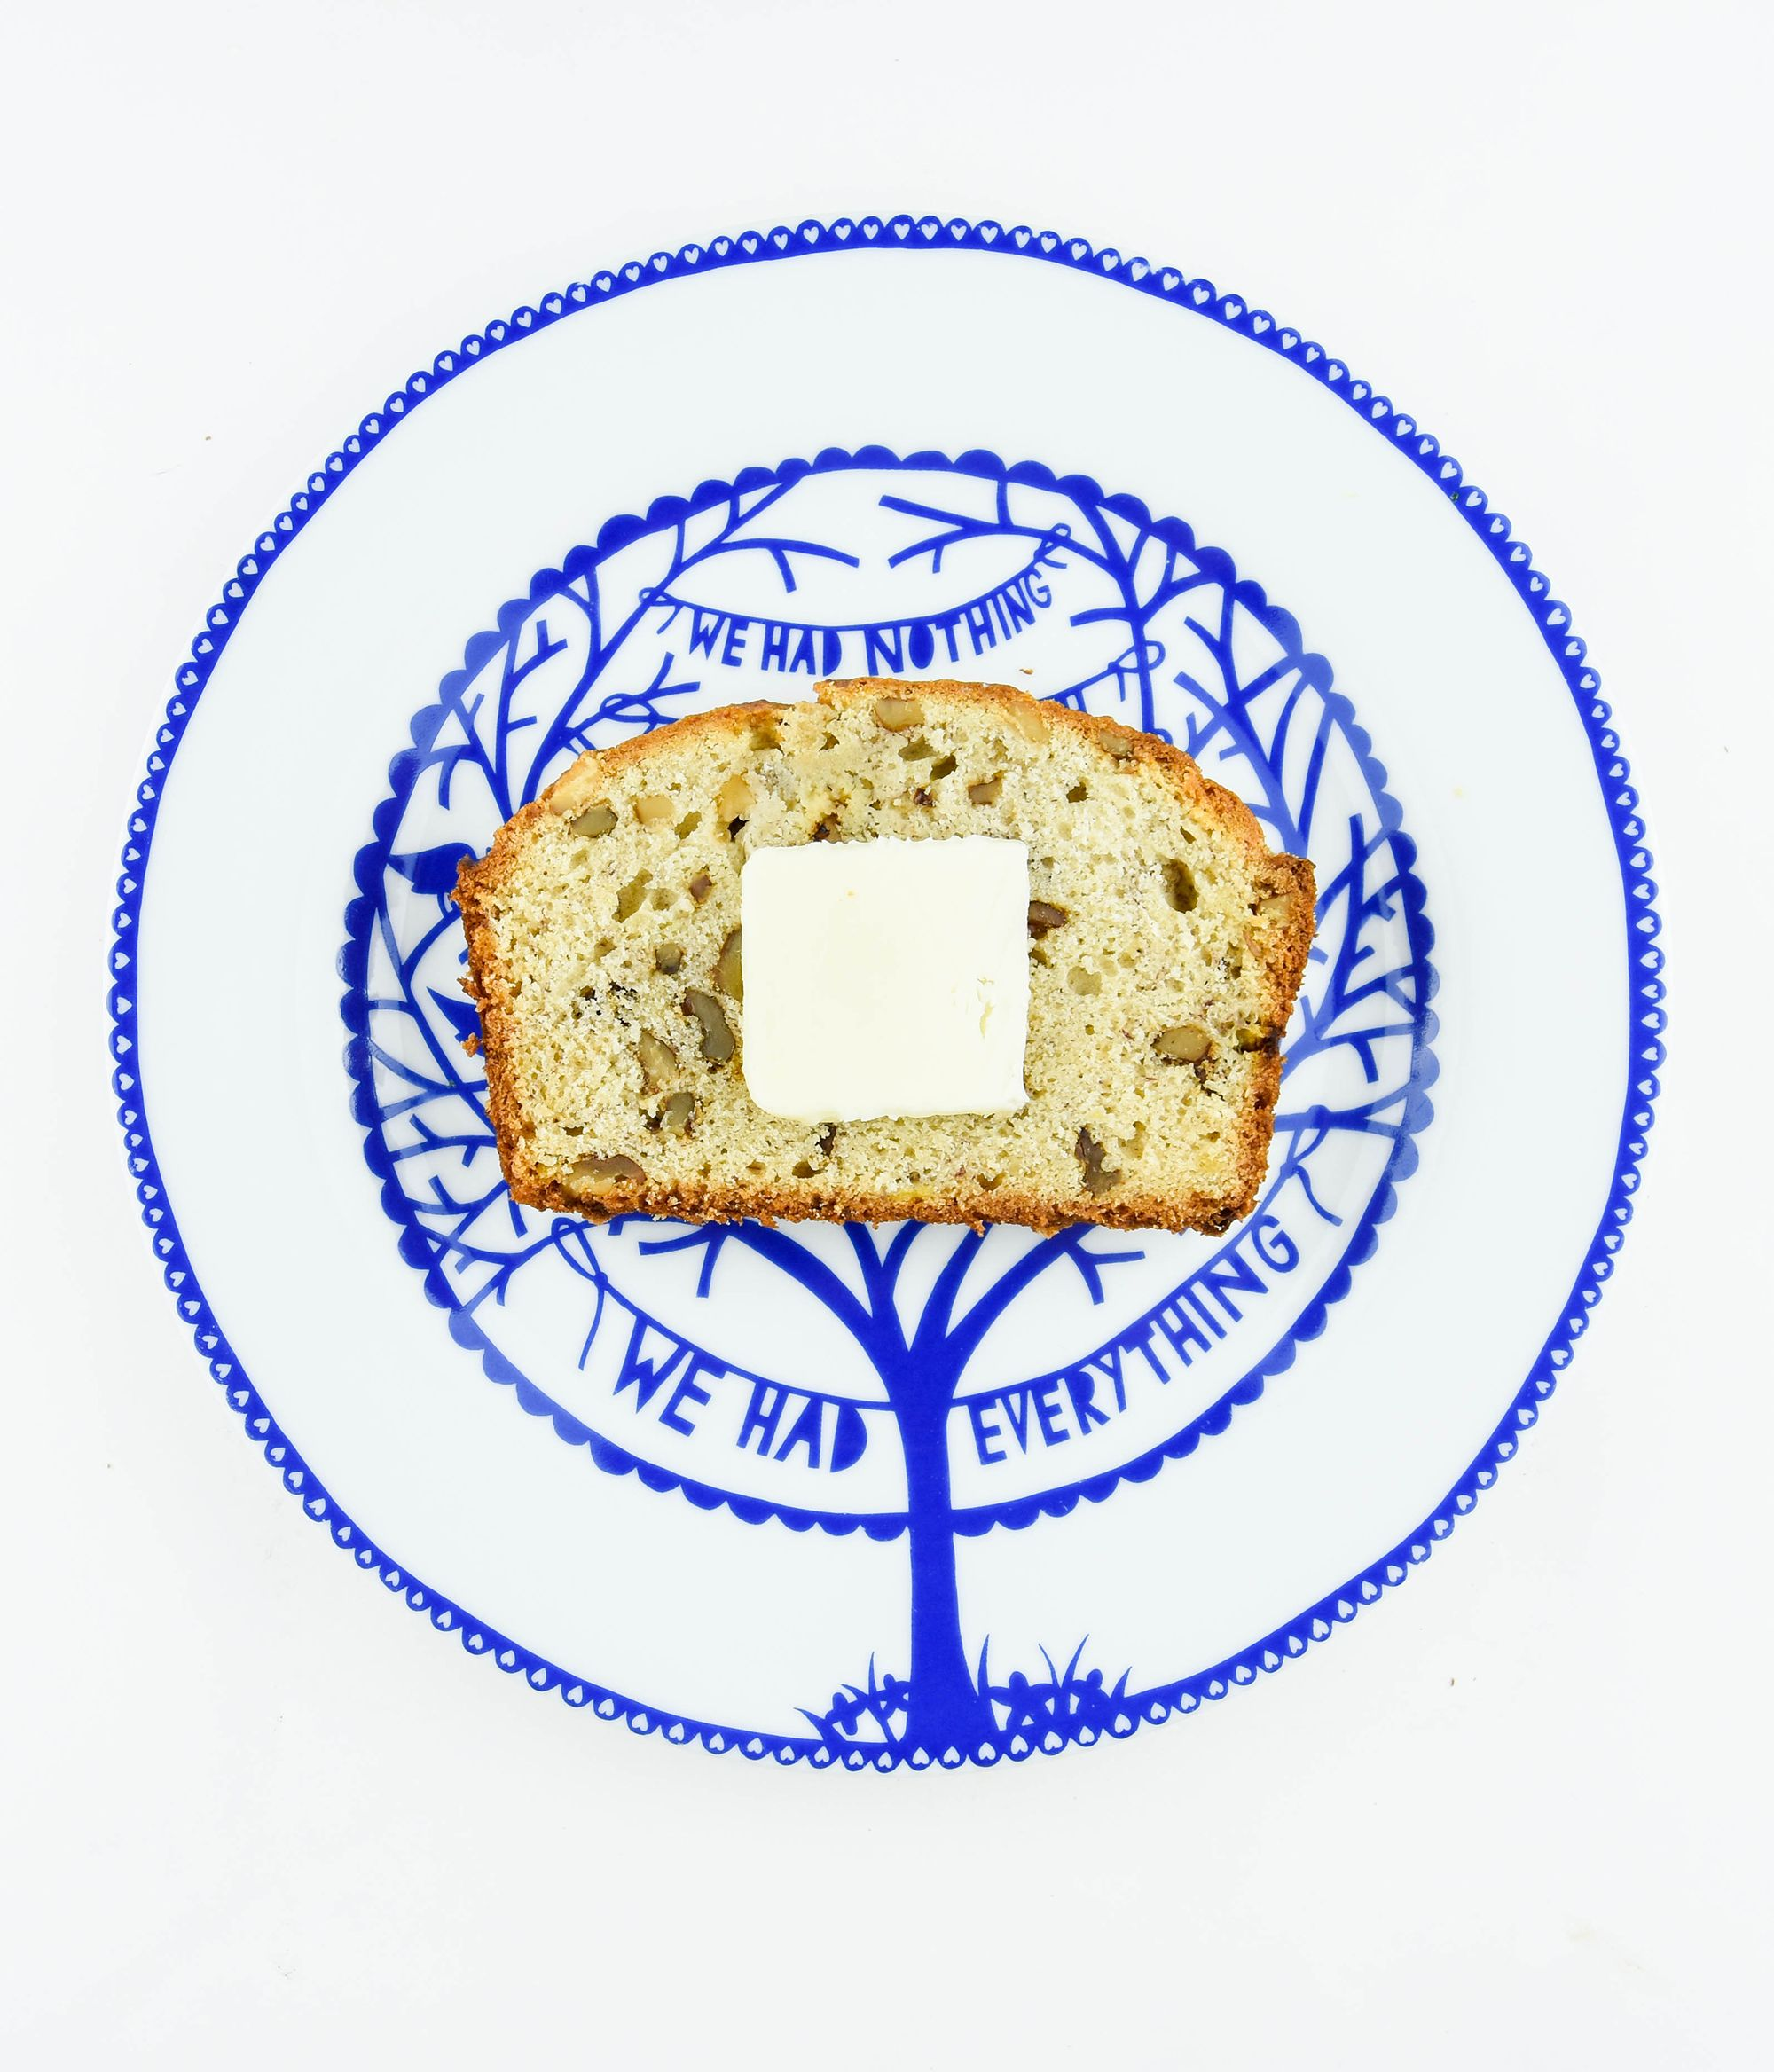 Grandma's banana nut bread recipe on Rob Ryan plate.